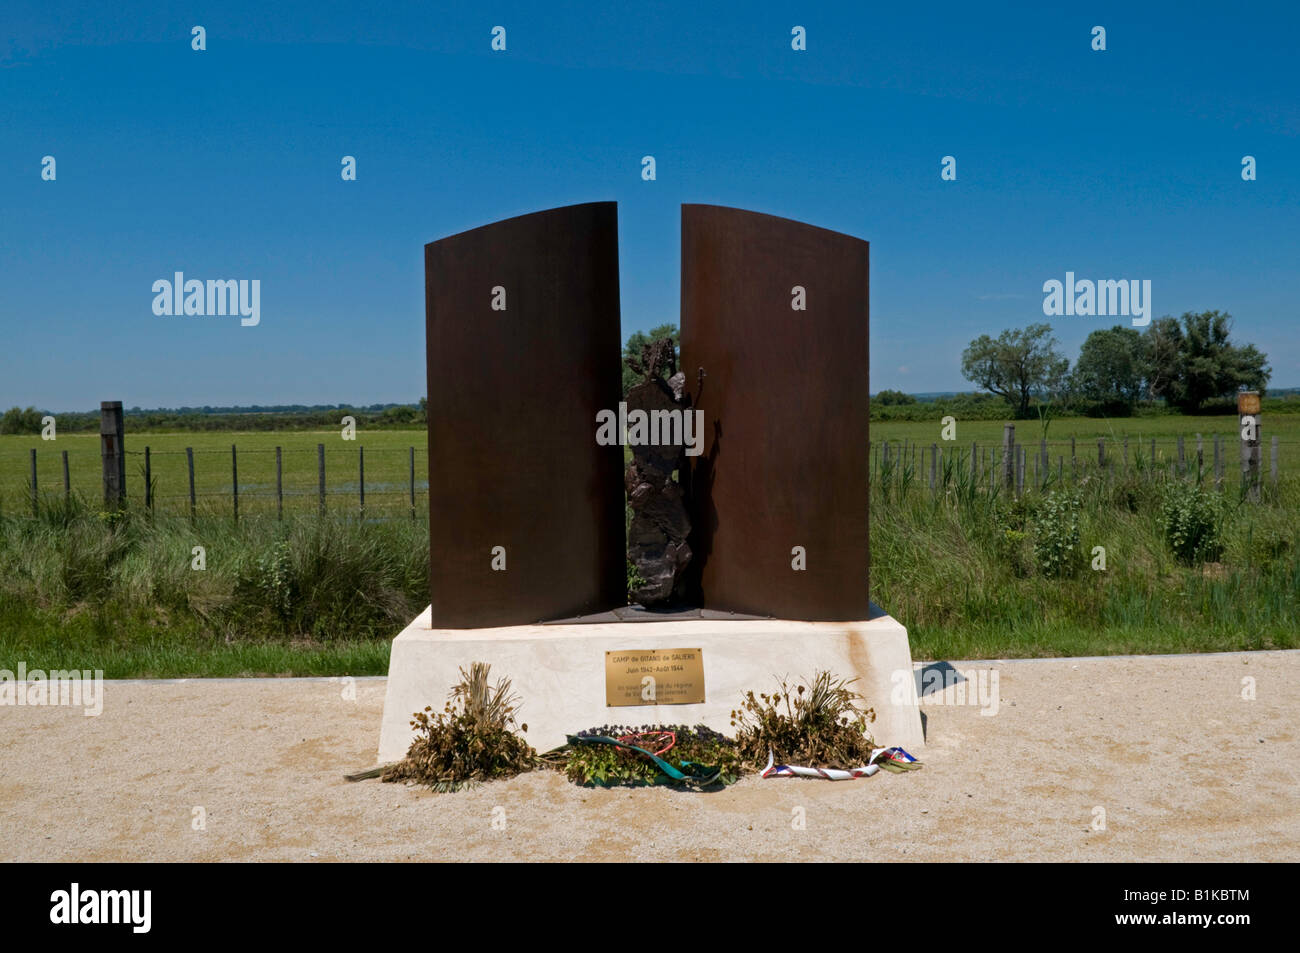 Memorial for internment camp for gipsies, Camargue, France. - Stock Image